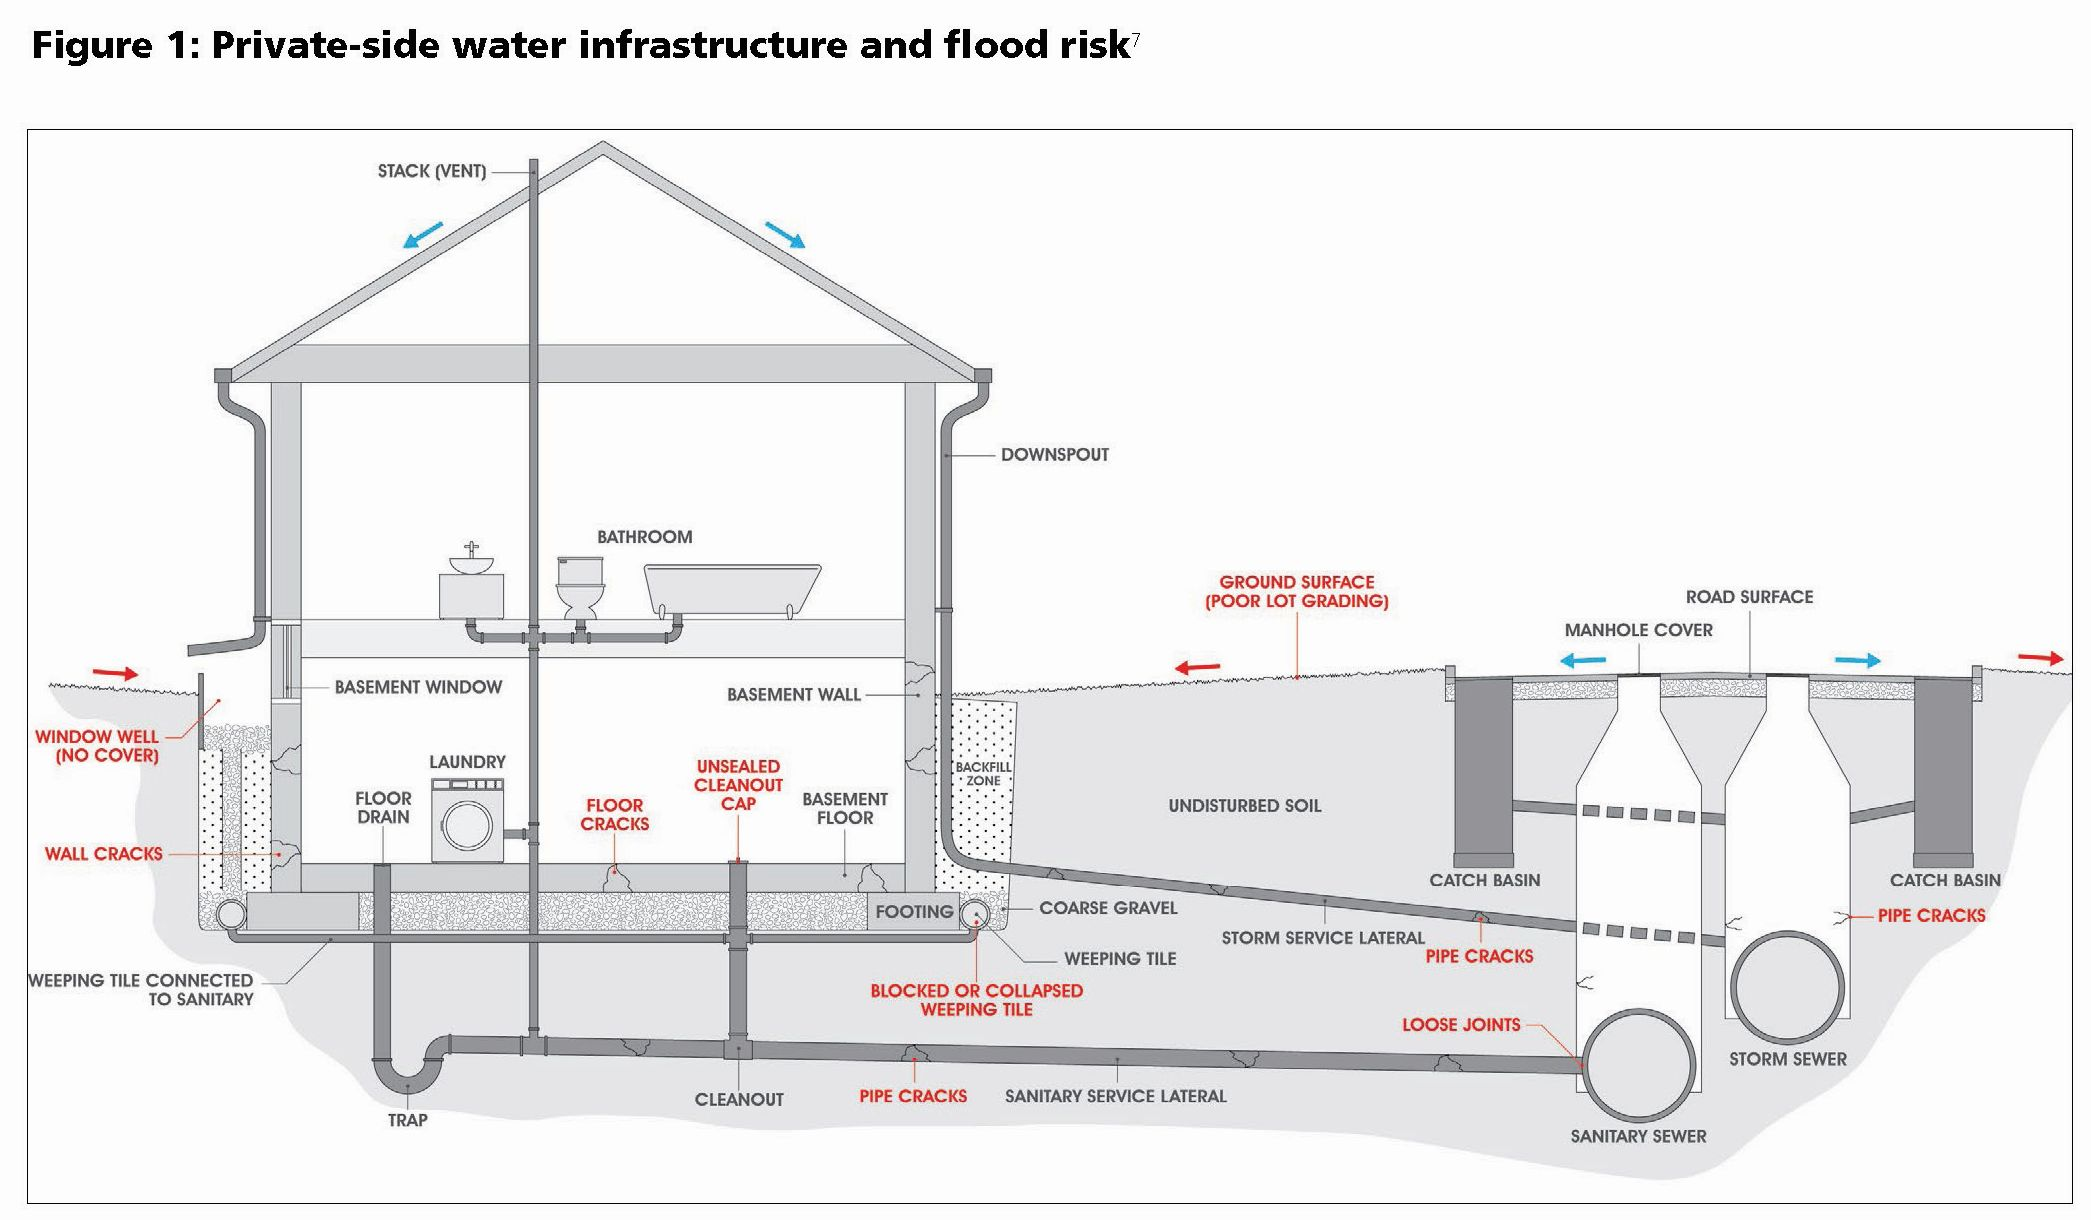 Figure 1 illustrates private-side I&I and flood vulnerability issues experienced in many Canadian homes and subdivisions. These vulnerabilities include poor lot grading, uncapped backfill areas, poor downspout discharge practice, lack of sewer backflow protection, degraded sewer laterals, among other vulnerabilities.